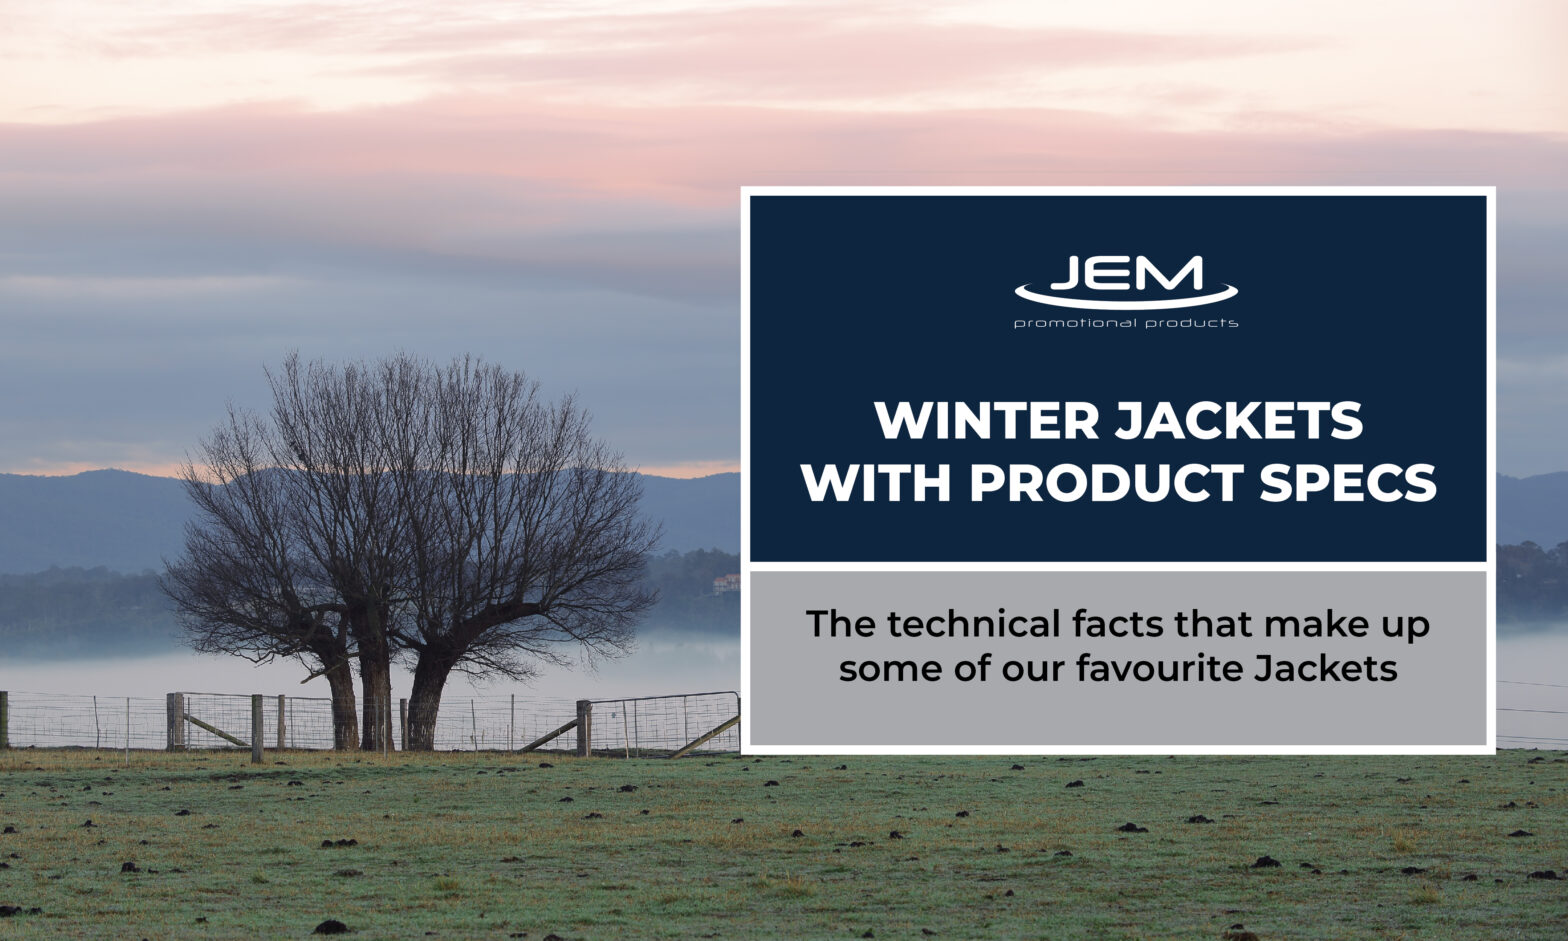 Winter Jackets With Product Specs